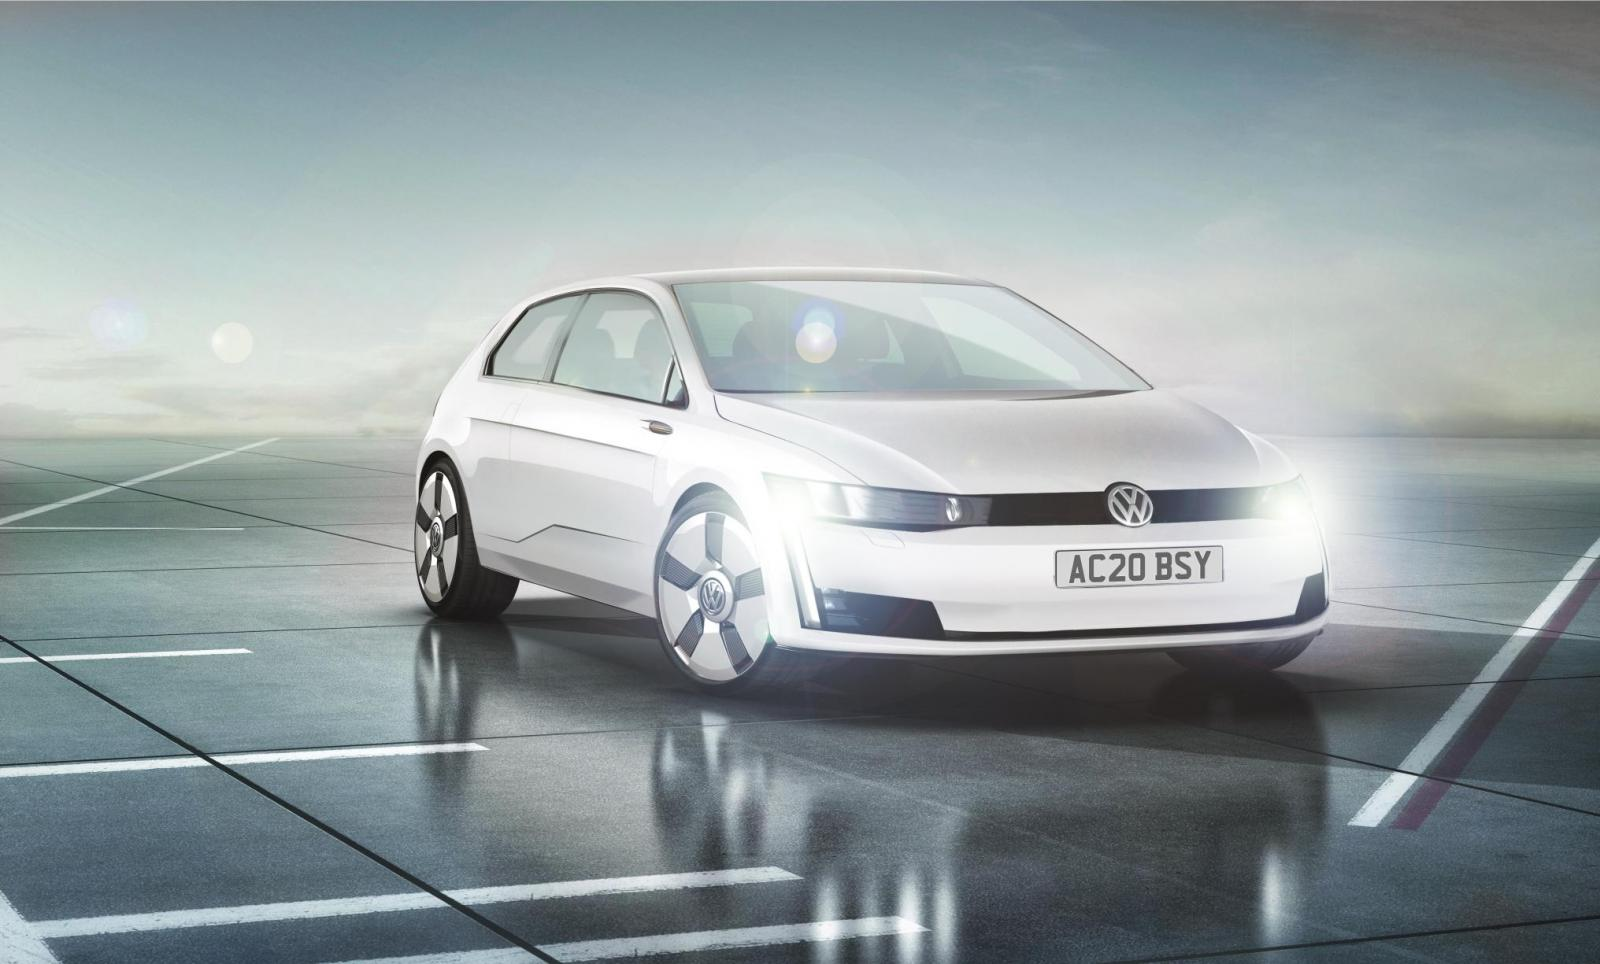 2019 Volkswagen Golf I photo - 4